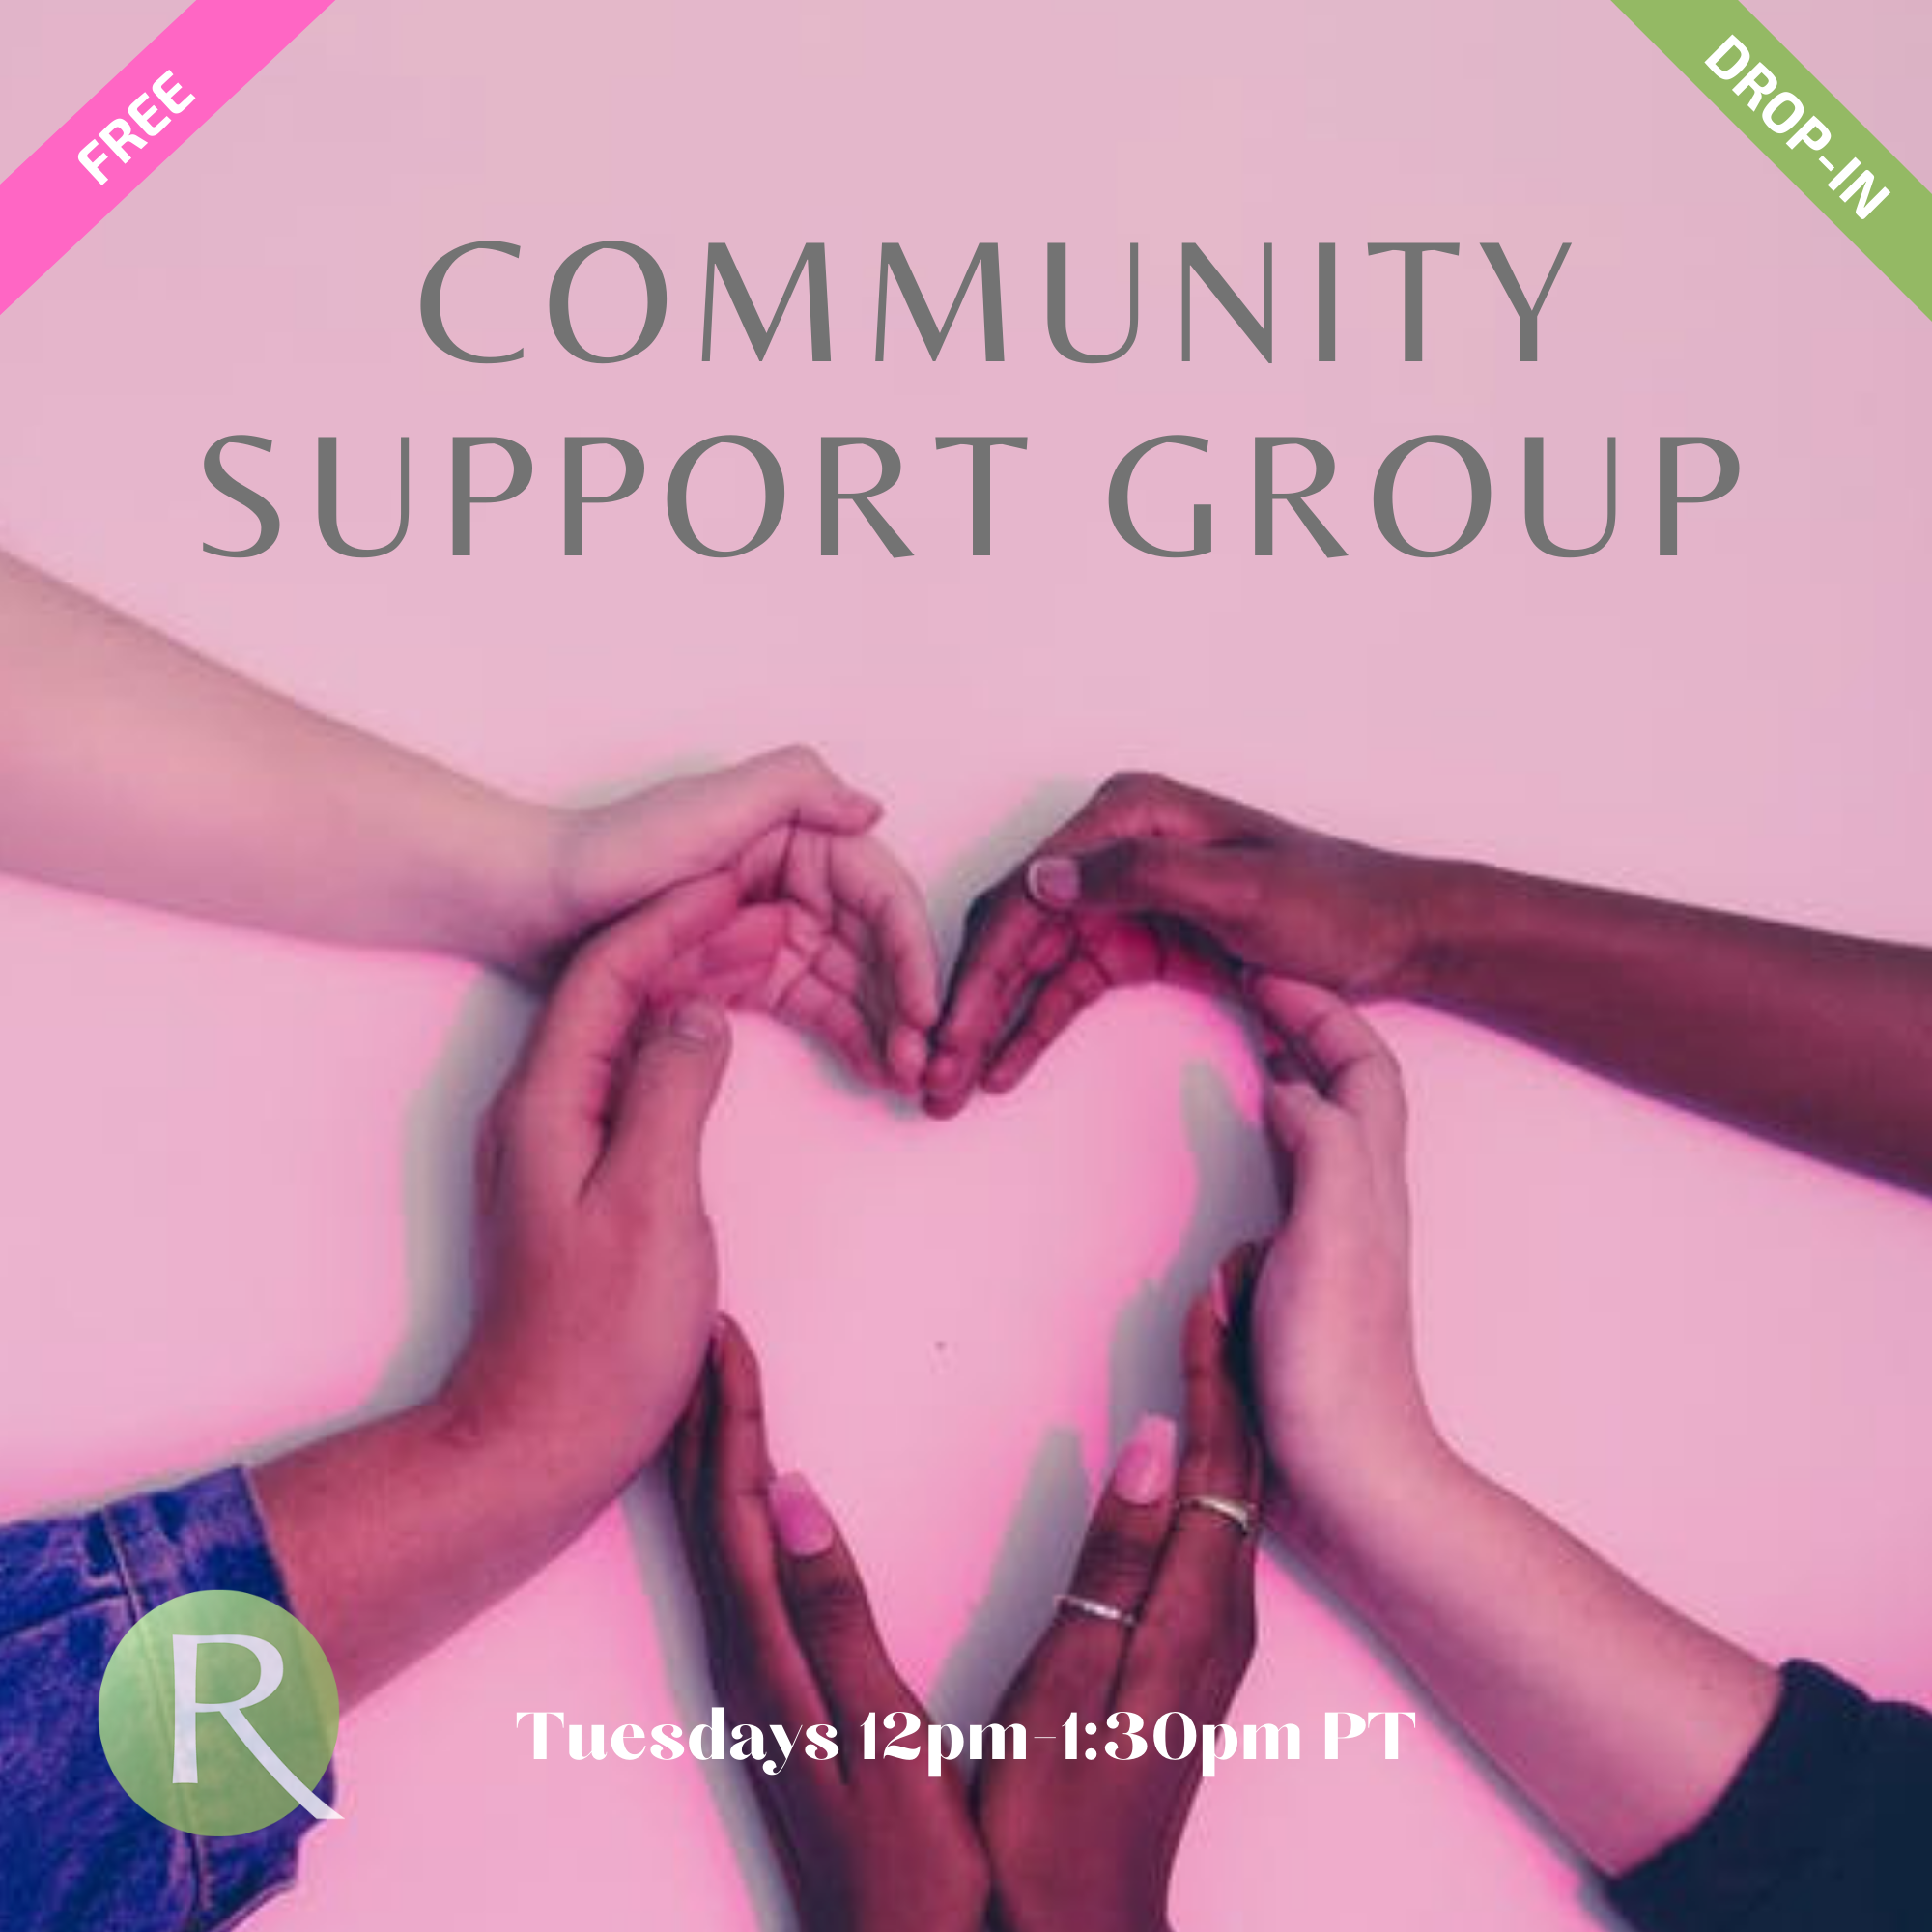 Community Support Group